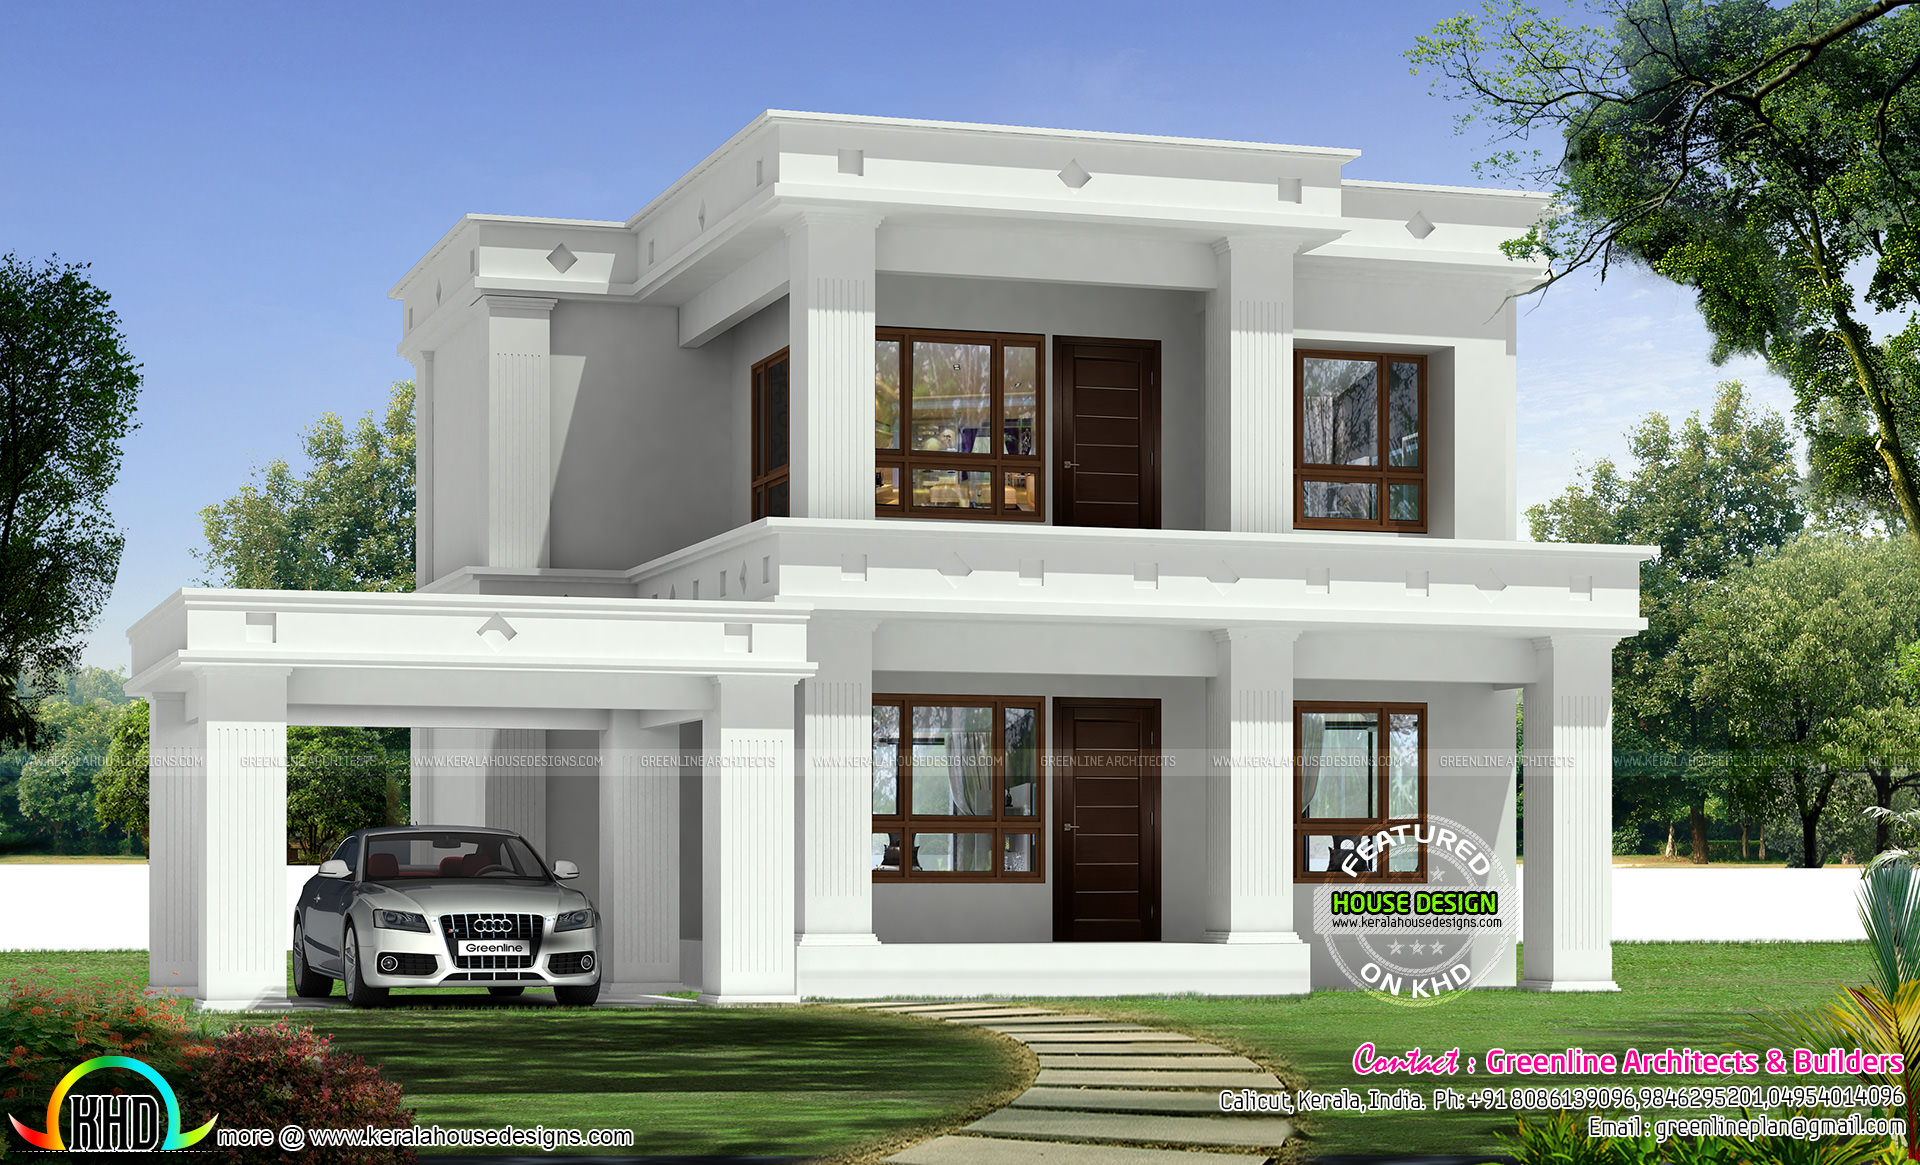 1494 Square Feet 3 Bedroom Flat Roof Home Kerala Home Design And Floor Plans